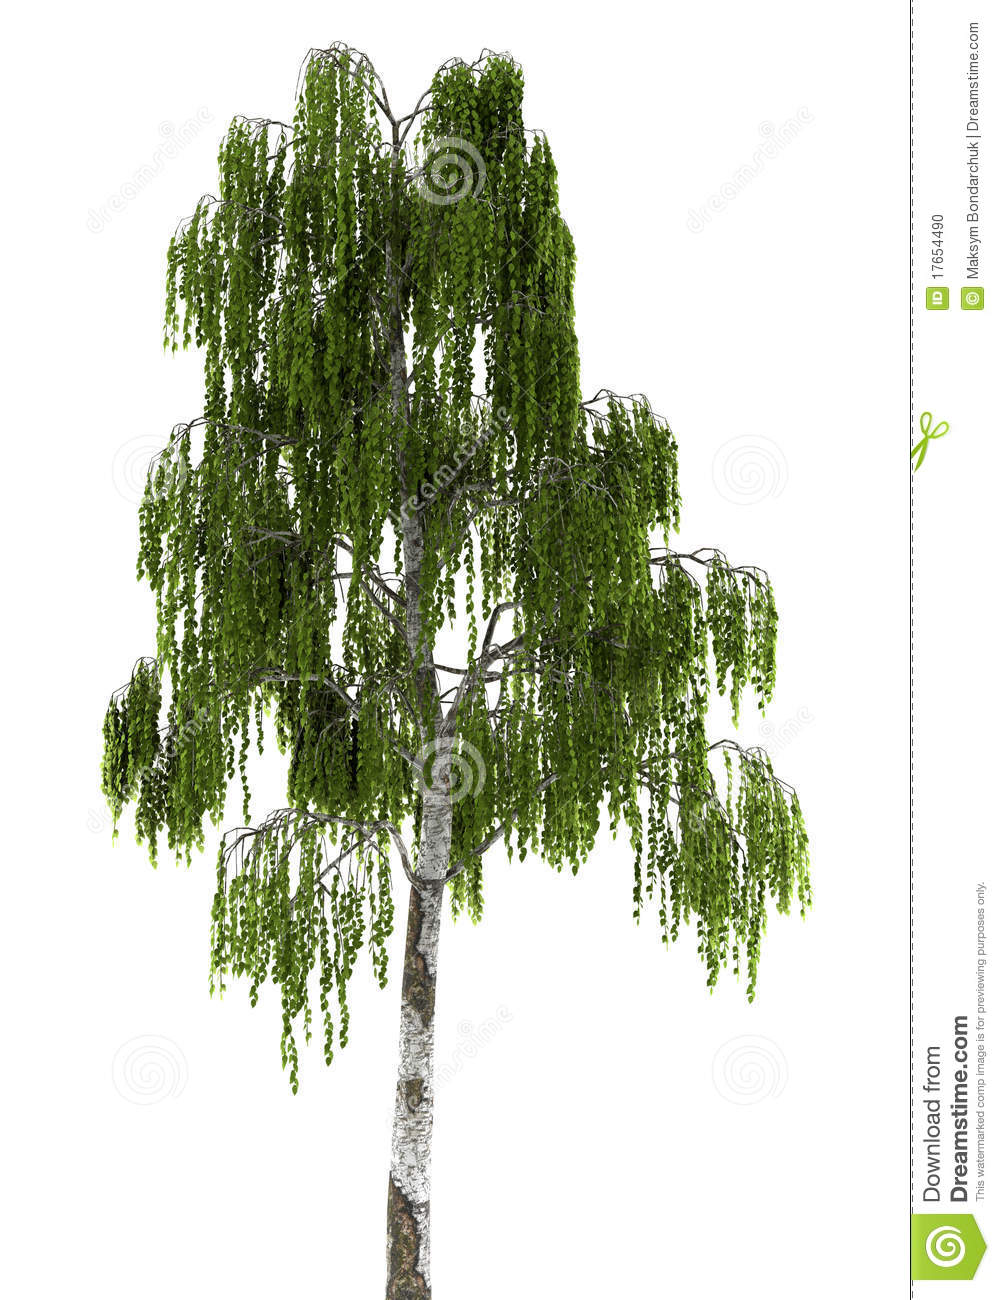 christian singles in birch tree Welcome to christian forums, a forum to discuss christianity in a friendly surrounding your voice is missing you will need to register to be able to join in fellowship with christians all over the world.